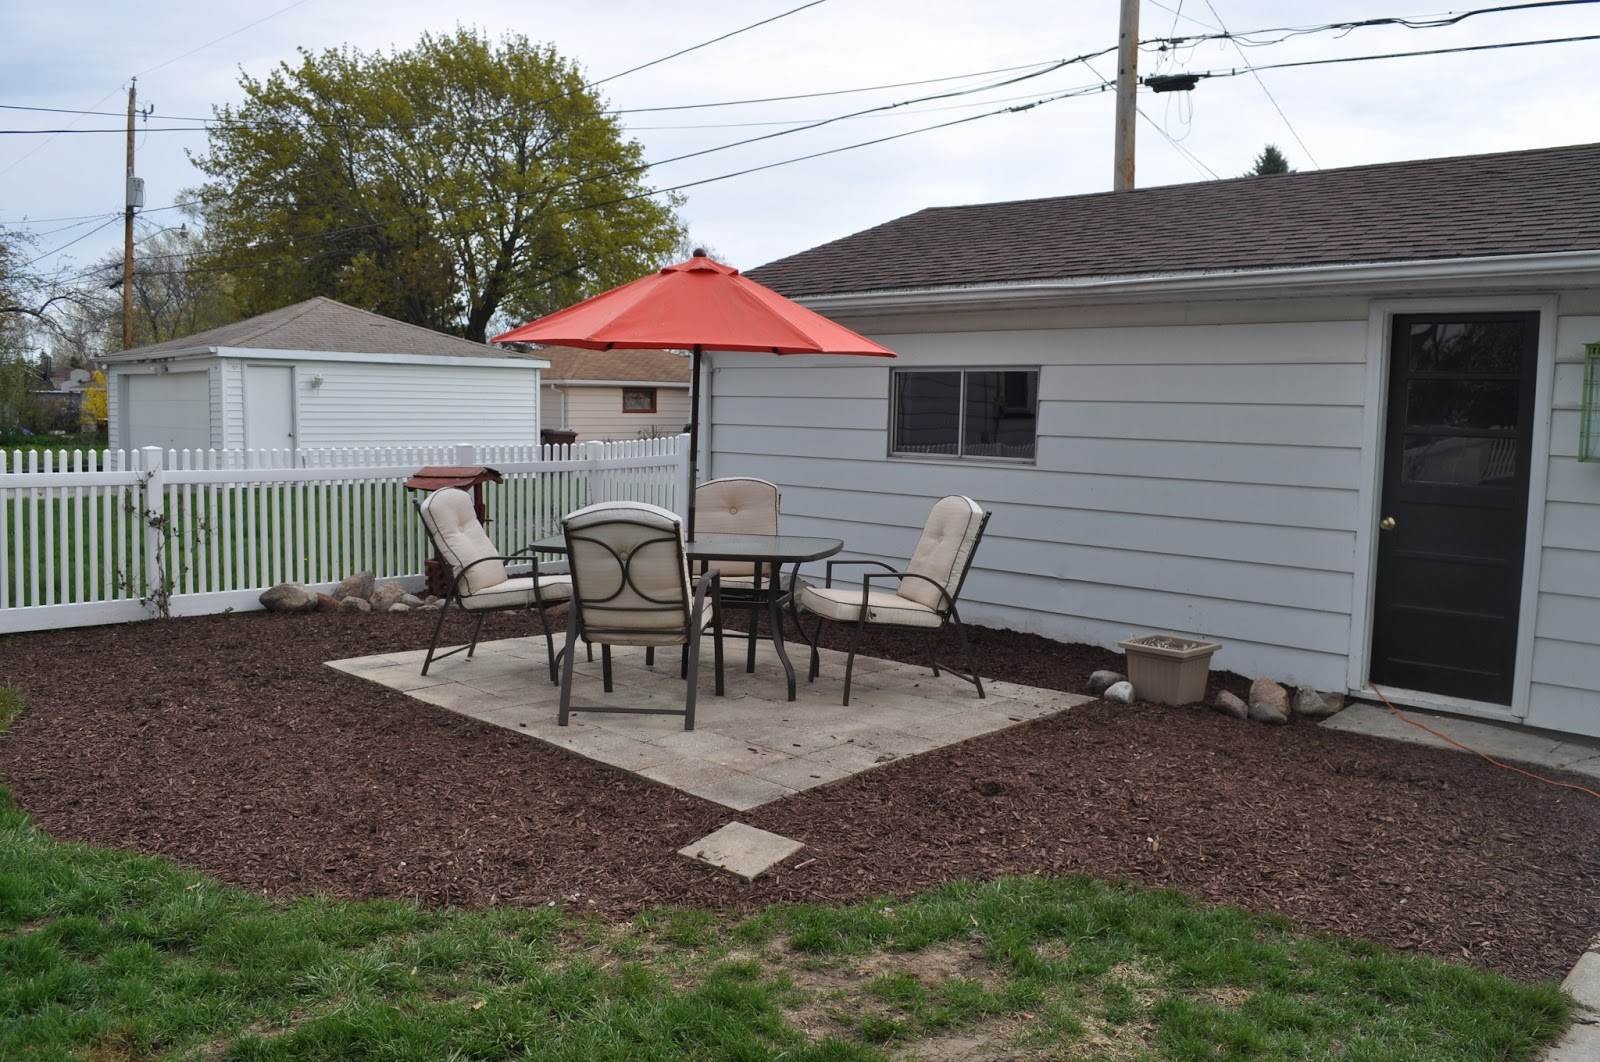 Carri Us Home: DIY Paver Patio